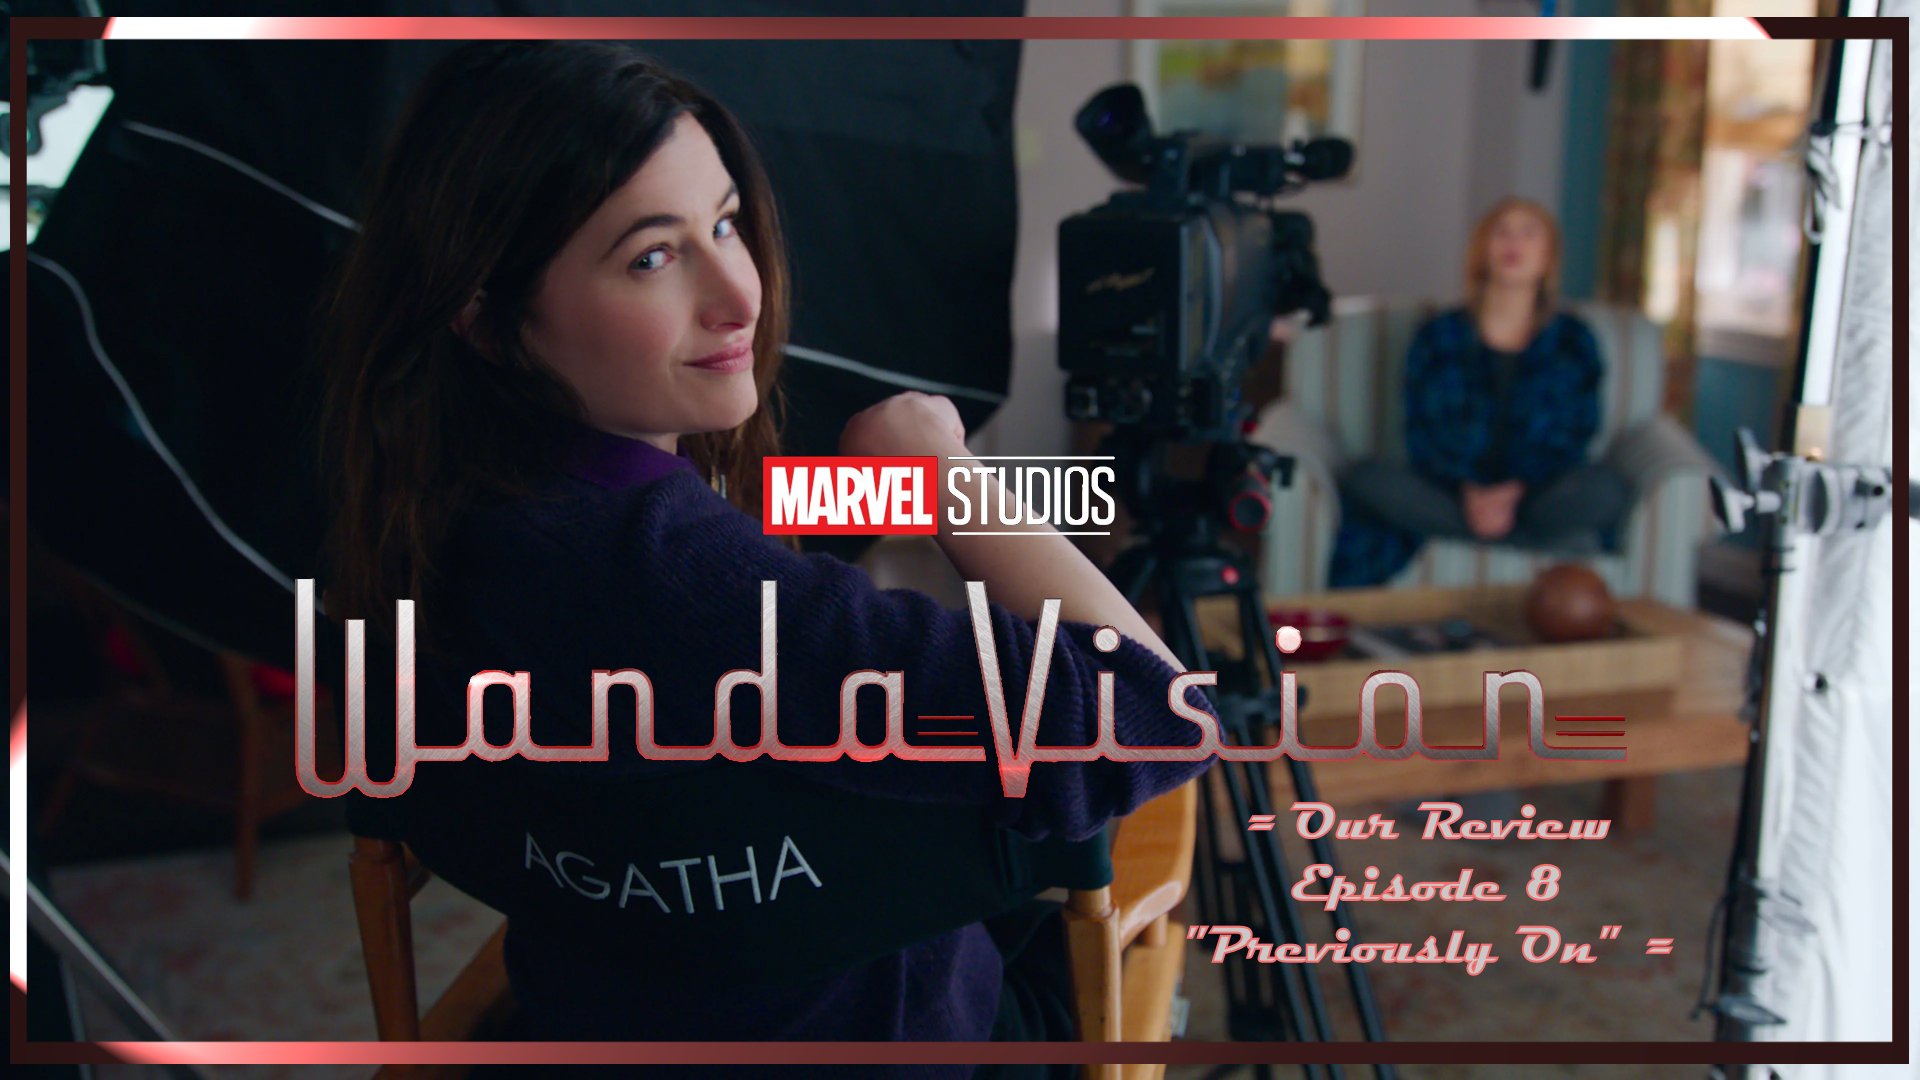 tv-review-wandavision-episode-8-previously-on